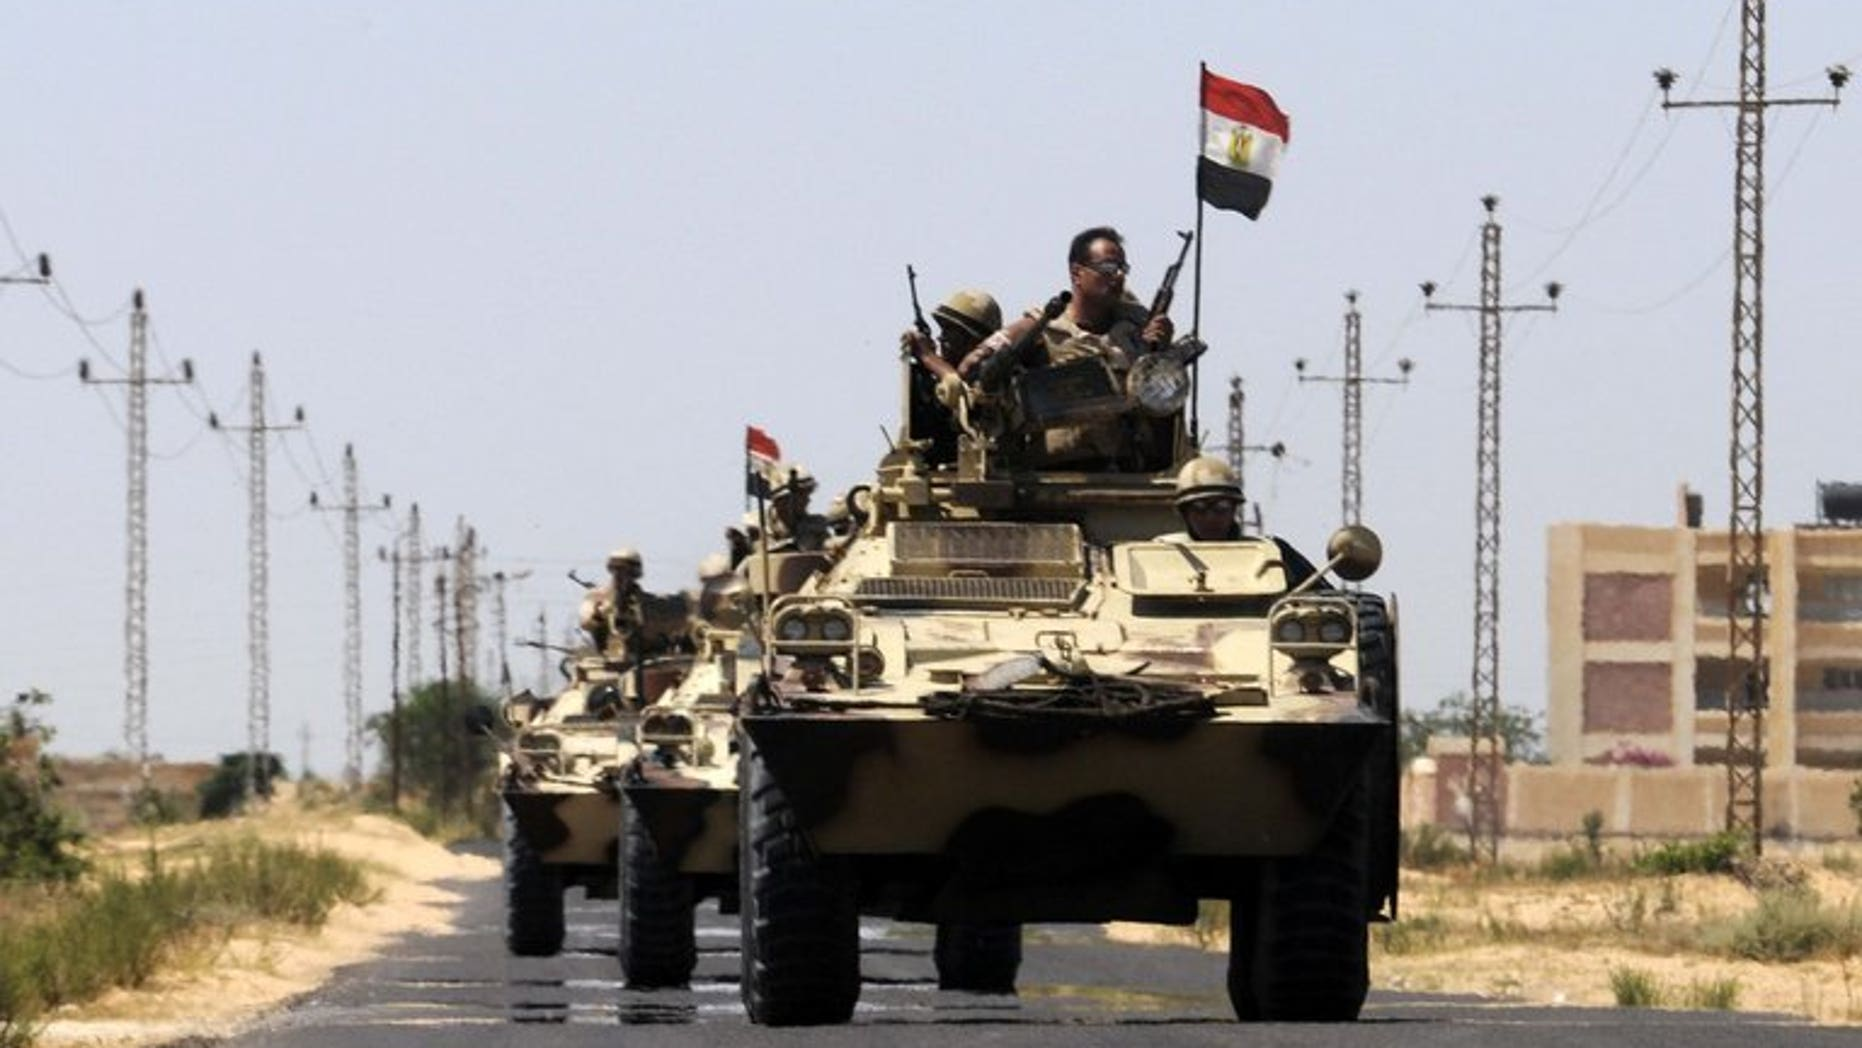 Egypt soldiers are deployed in the area of the Rafah Crossing border between Egypt and the Gaza Strip, on May 21, 2013. Militants in Egypt's Sinai peninsula on Thursday killed seven soldiers in an attack on a checkpoint, security officials said.